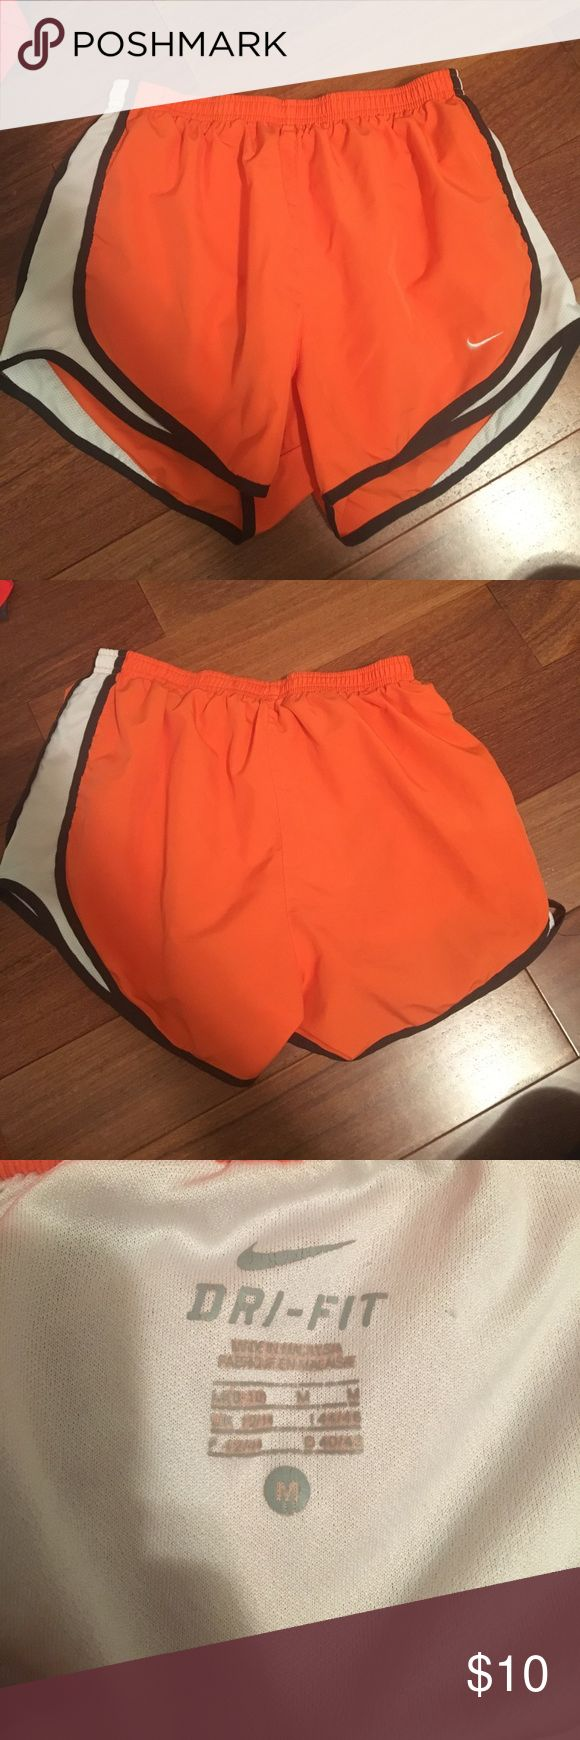 Orange nike running shorts for women size M No stains great condition super comfortable and cute color. Also on the shorter side so it's cute while still sporty. But not too short! And i'm 5'10 so it's all good. Nike Shorts